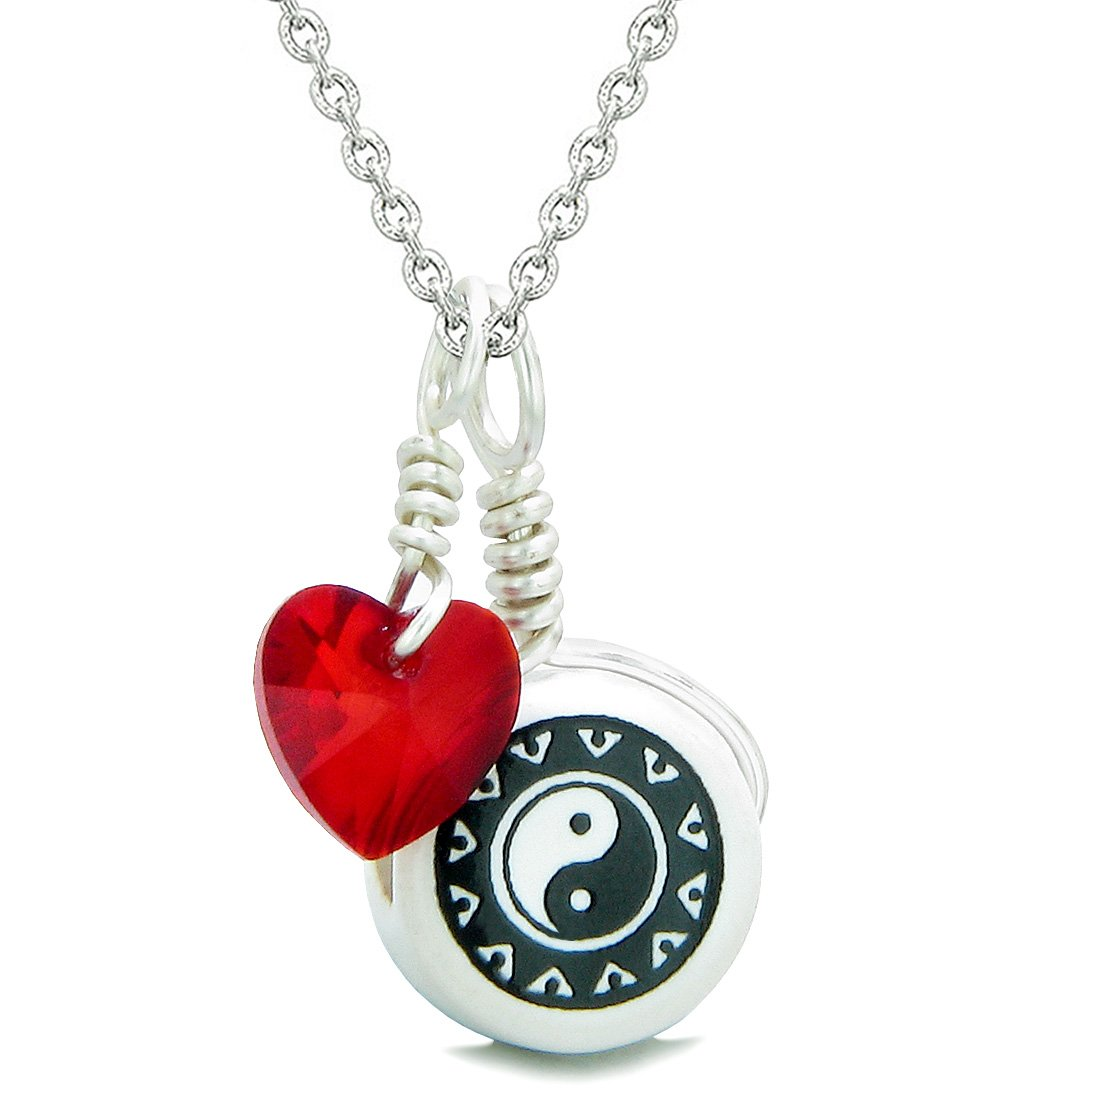 Handcrafted Cute Ceramic Lucky Charm Black White Yin Yang Red Heart Amulet Pendant 22 Inch Necklace